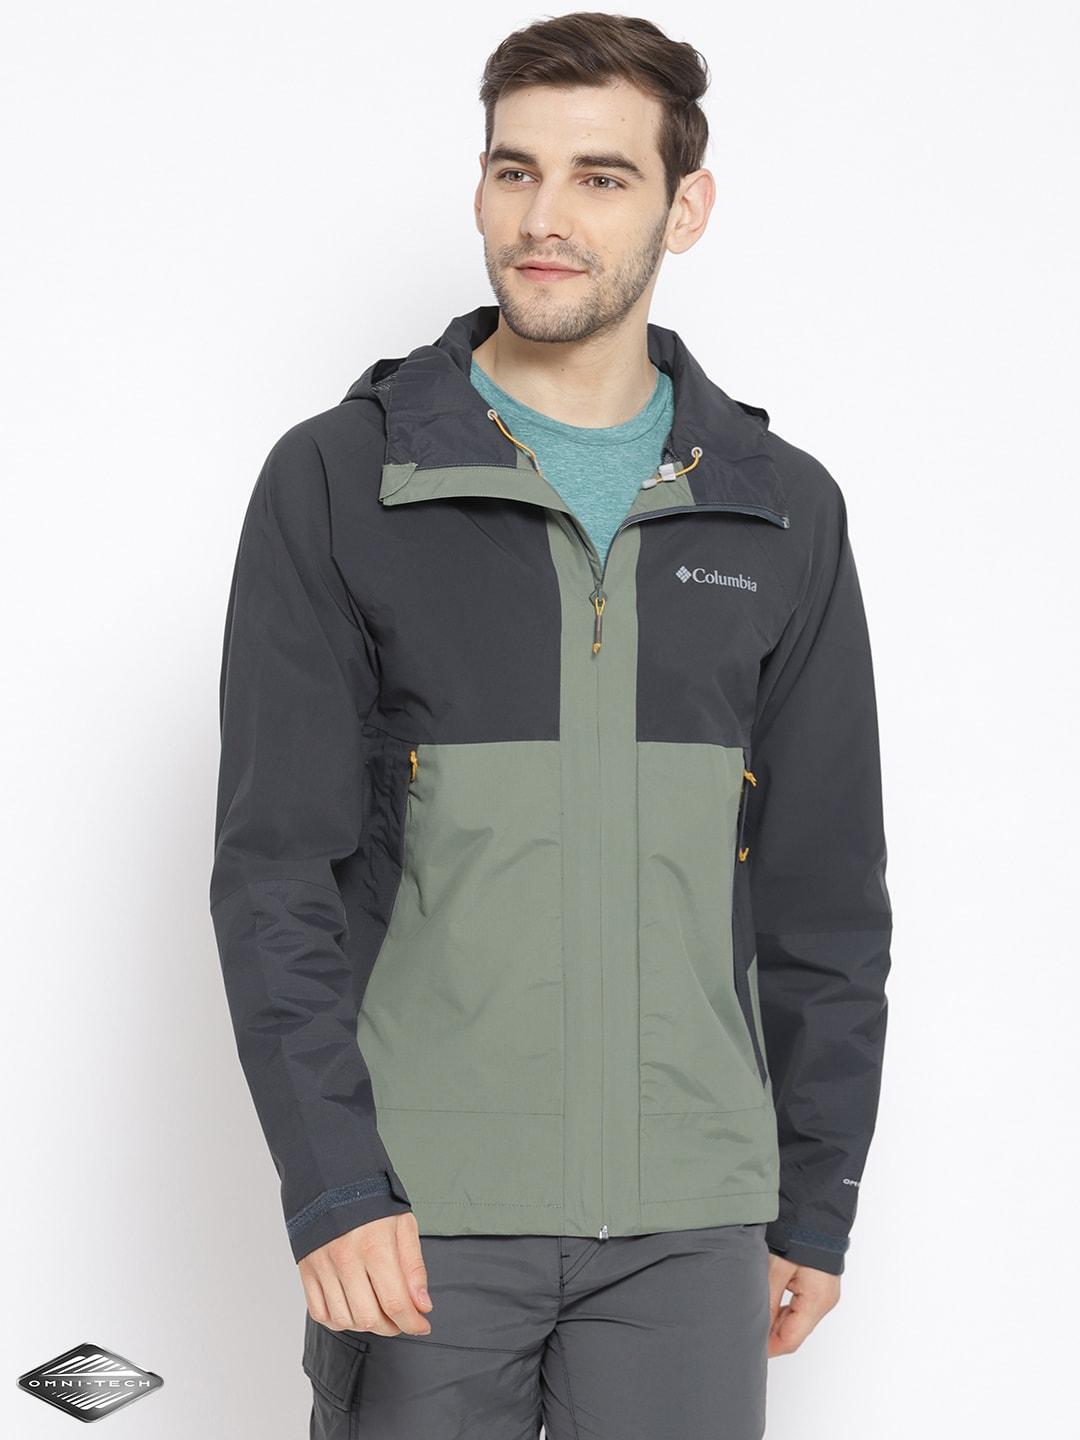 Charcoal Rain Greyamp; Waterproof Evolution Breathable Jacket Olive Green Valley Columbia L5A34Rj